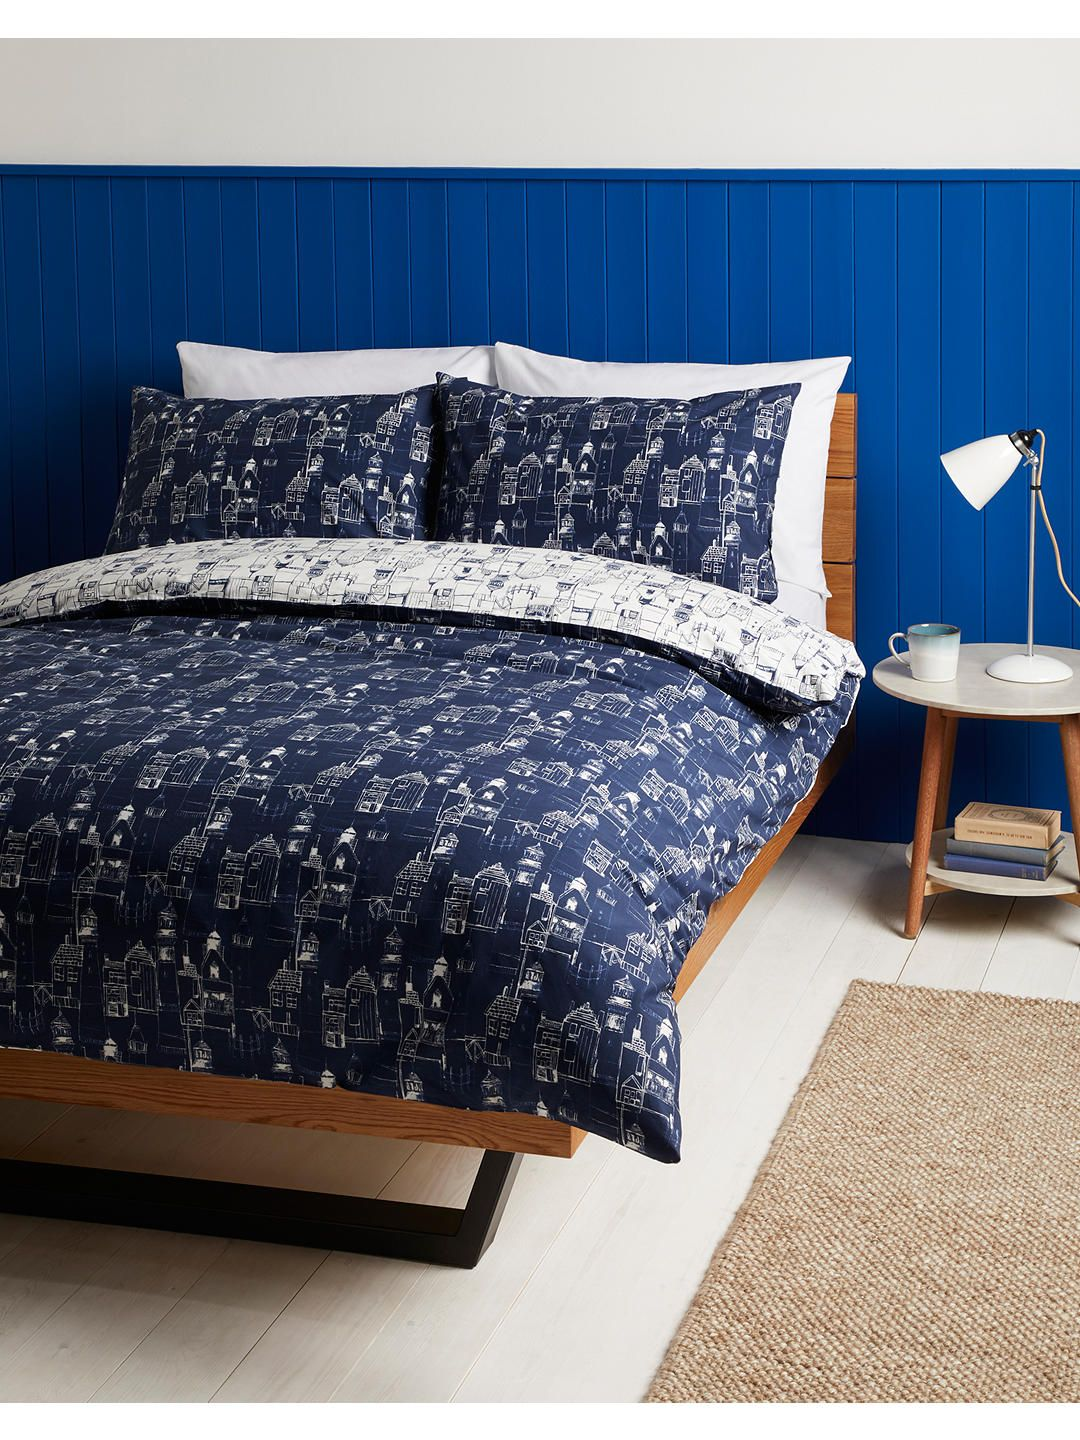 John Lewis & Partners Lighthouse Duvet Cover Set